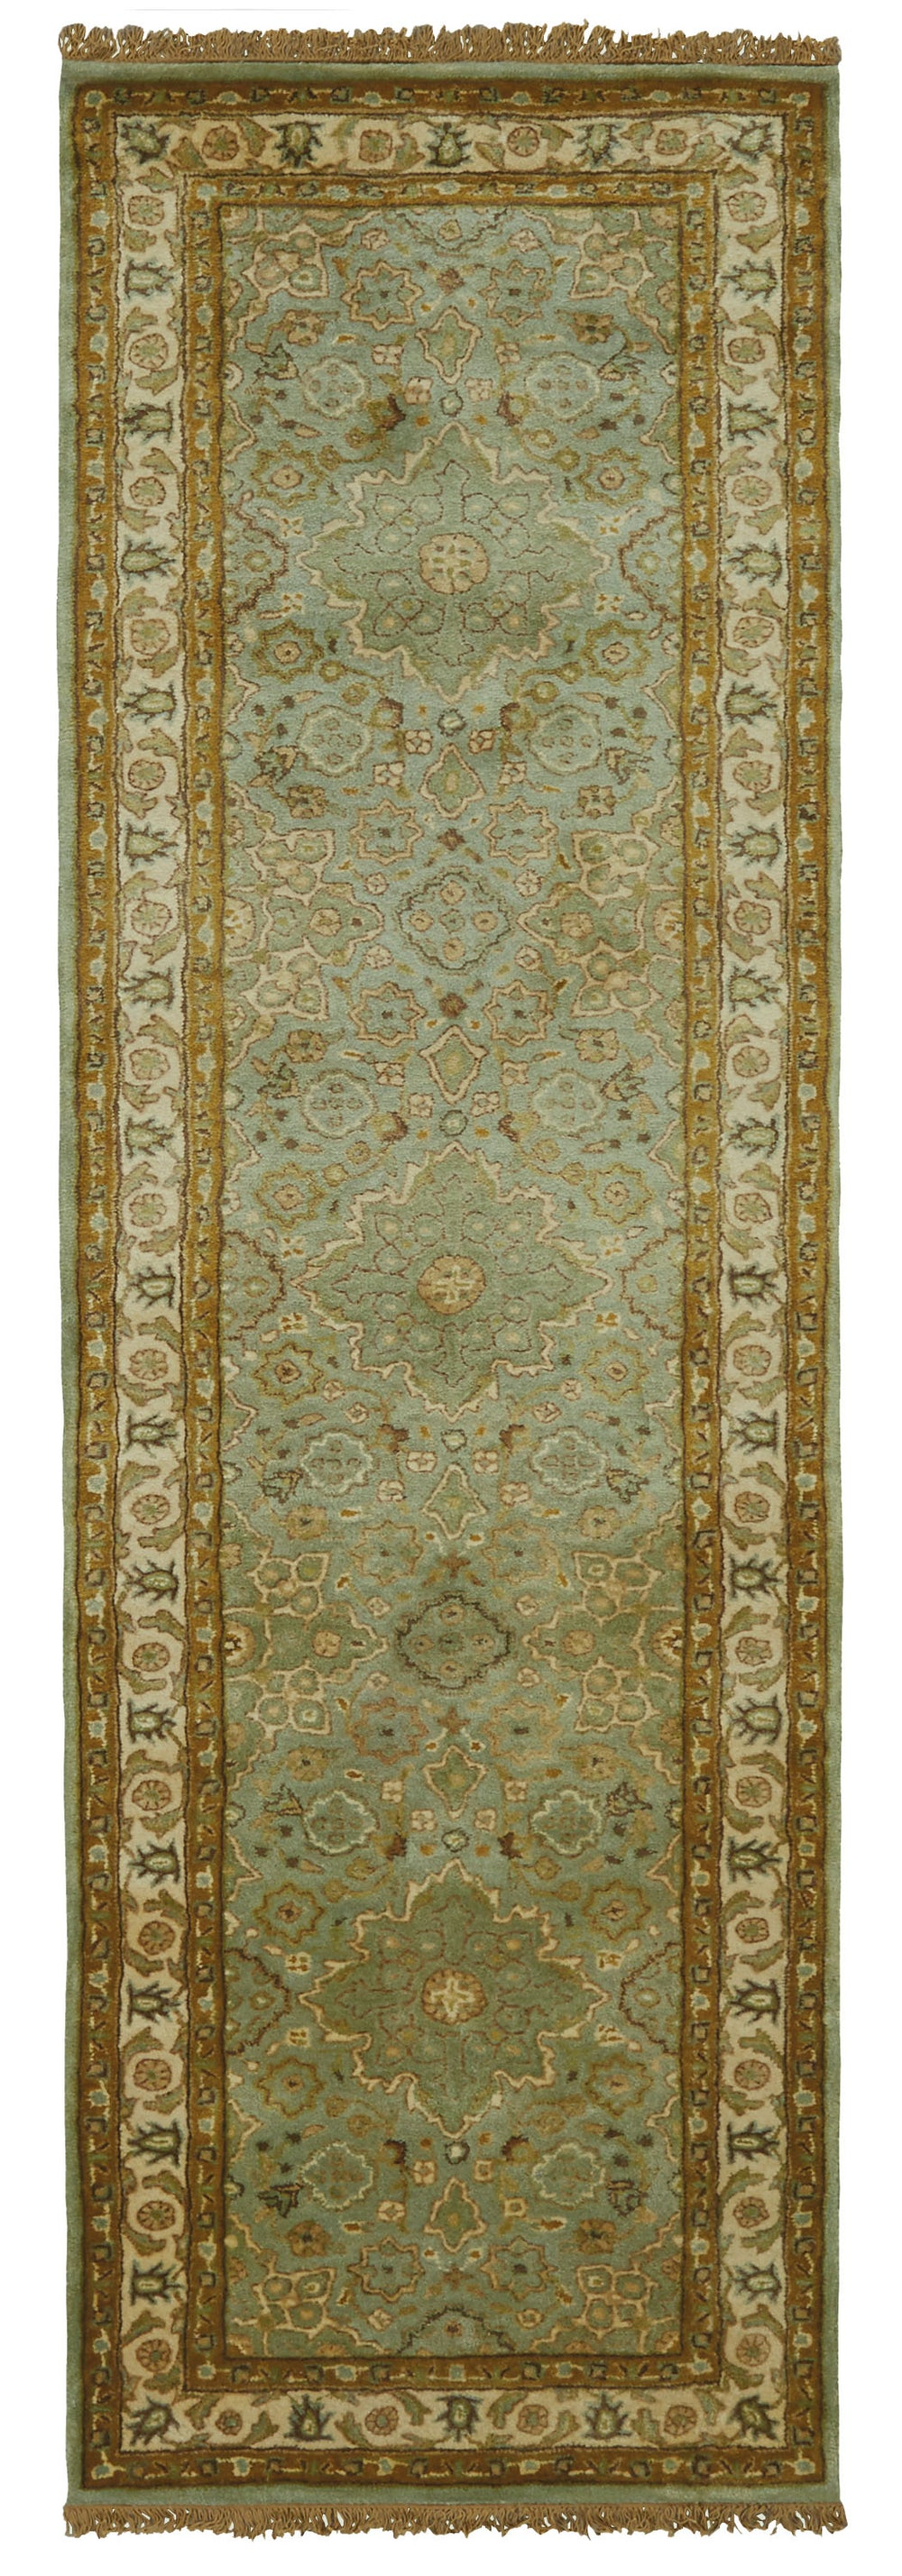 Feizy Amore 8239F Area Rug